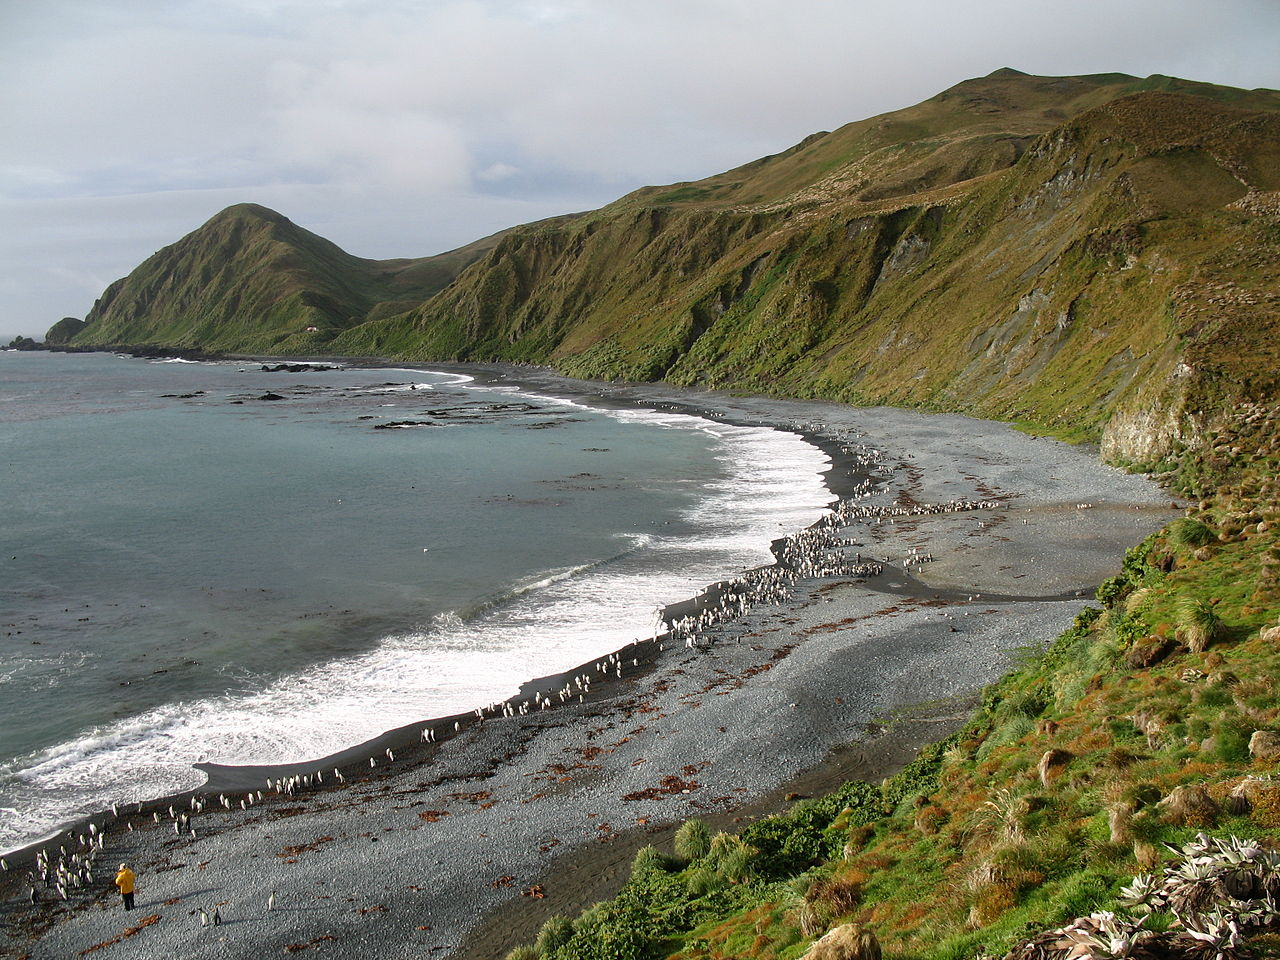 Macquarie Island in Tasmania - Australia